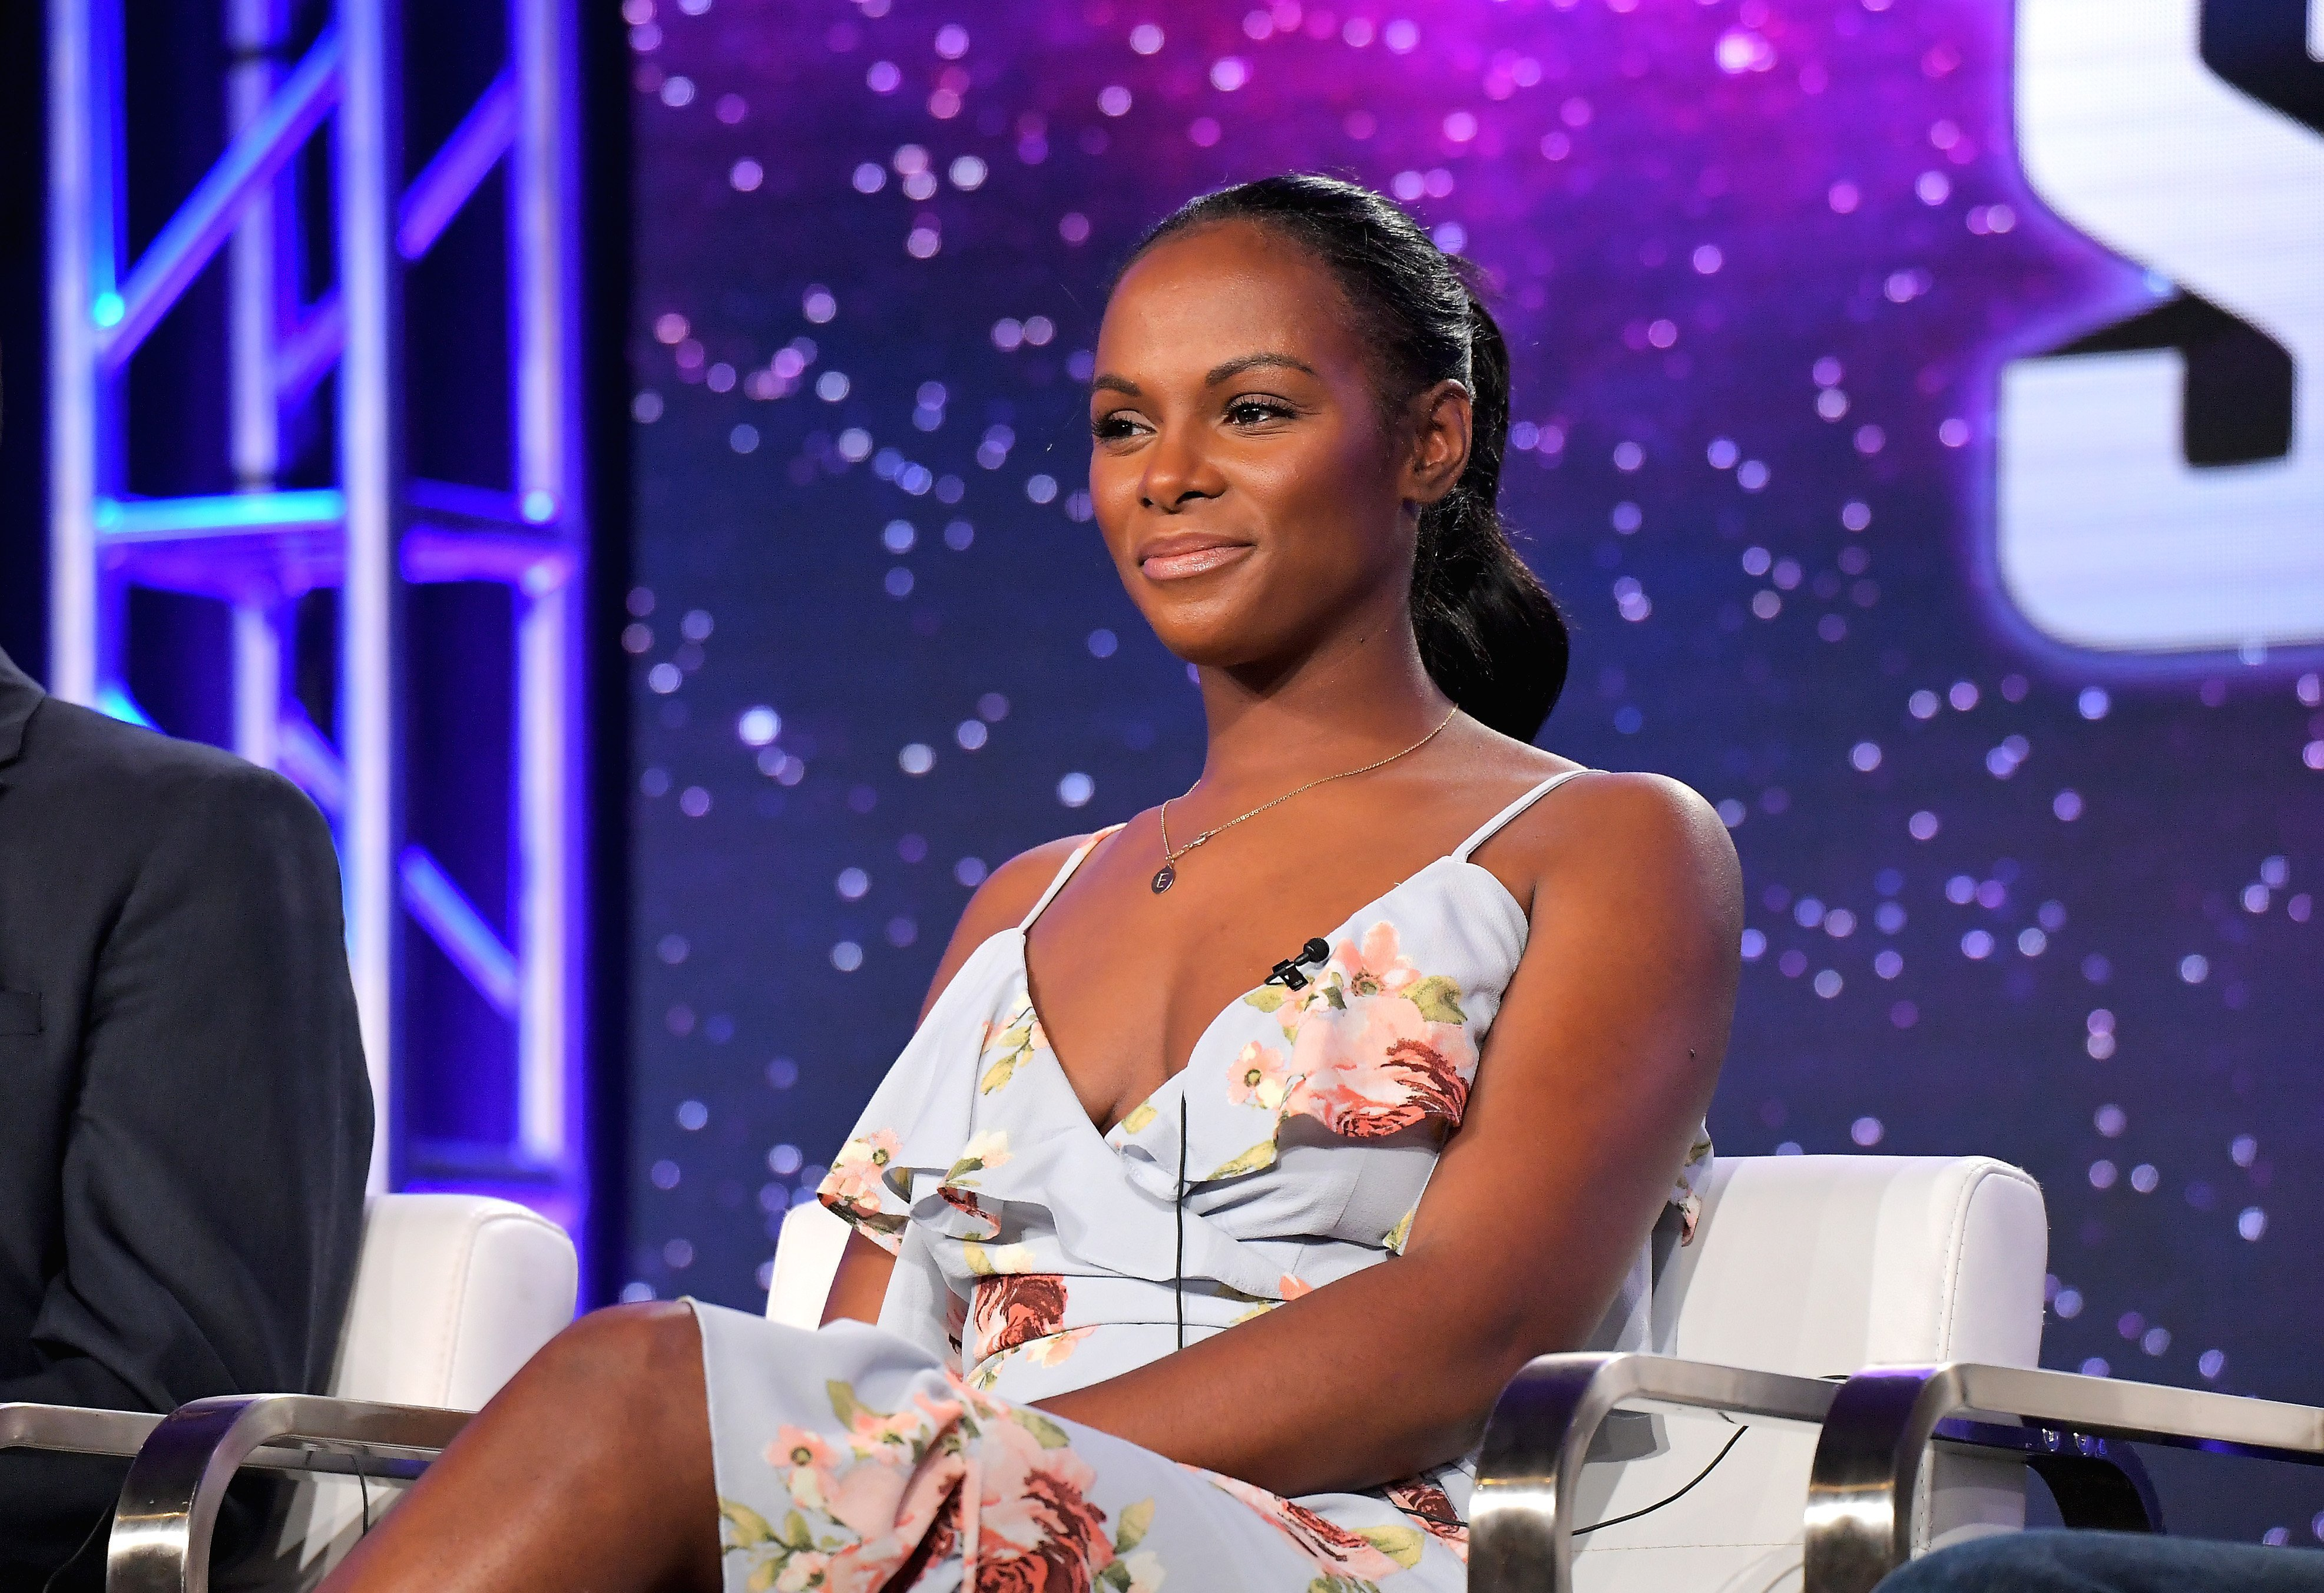 Tika Sumpter at the TCA Turner Winter Press Tour 2018 Presentation on January 11, 2018 | Photo: GettyImages